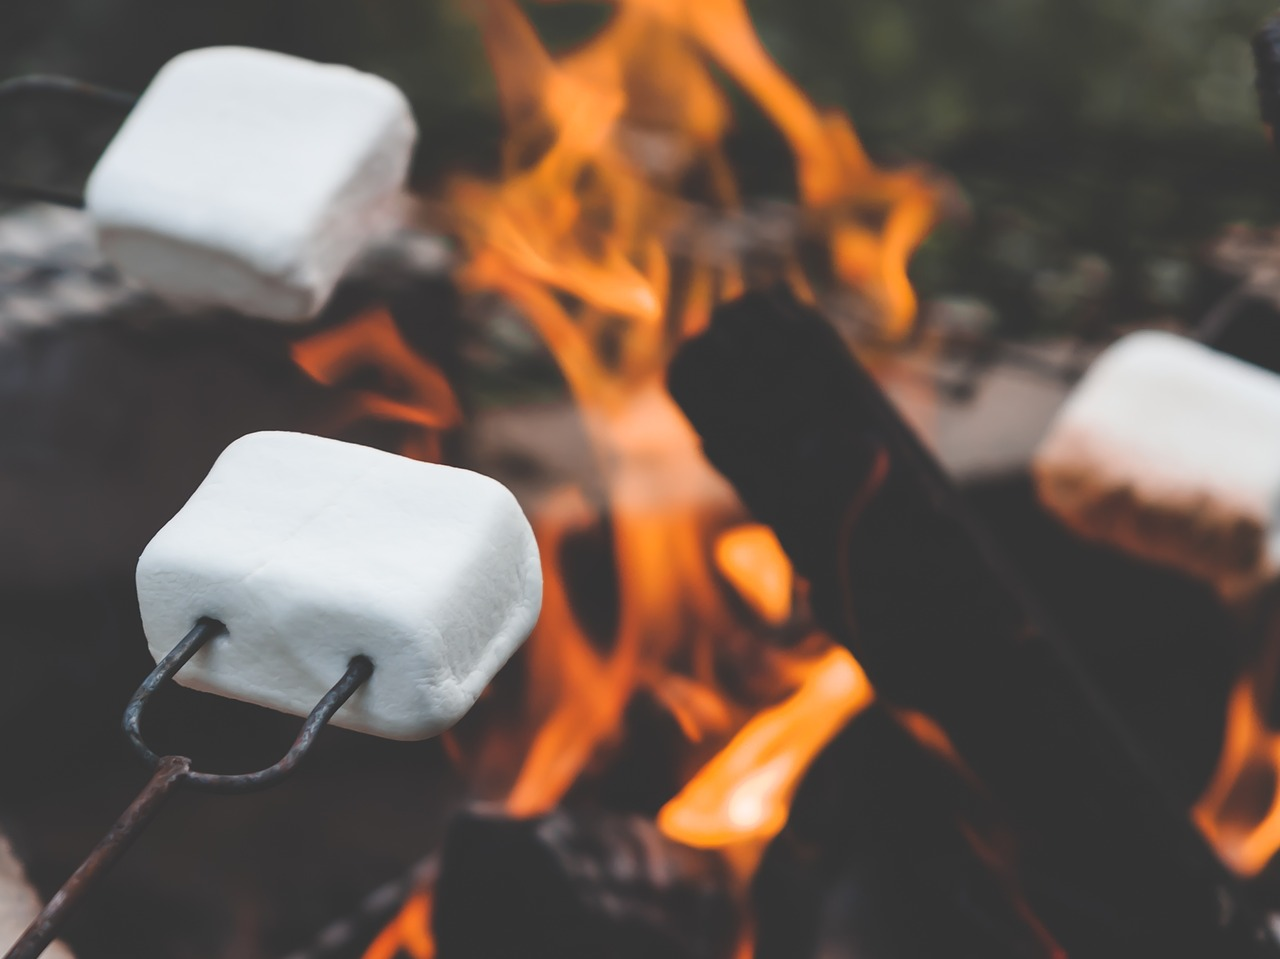 marshmallow,marshmallows,campfire,roasting,summer,evening,finnish,summer evening,high summer,midsummer,yötönyö,fire,burn,free pictures, free photos, free images, royalty free, free illustrations, public domain